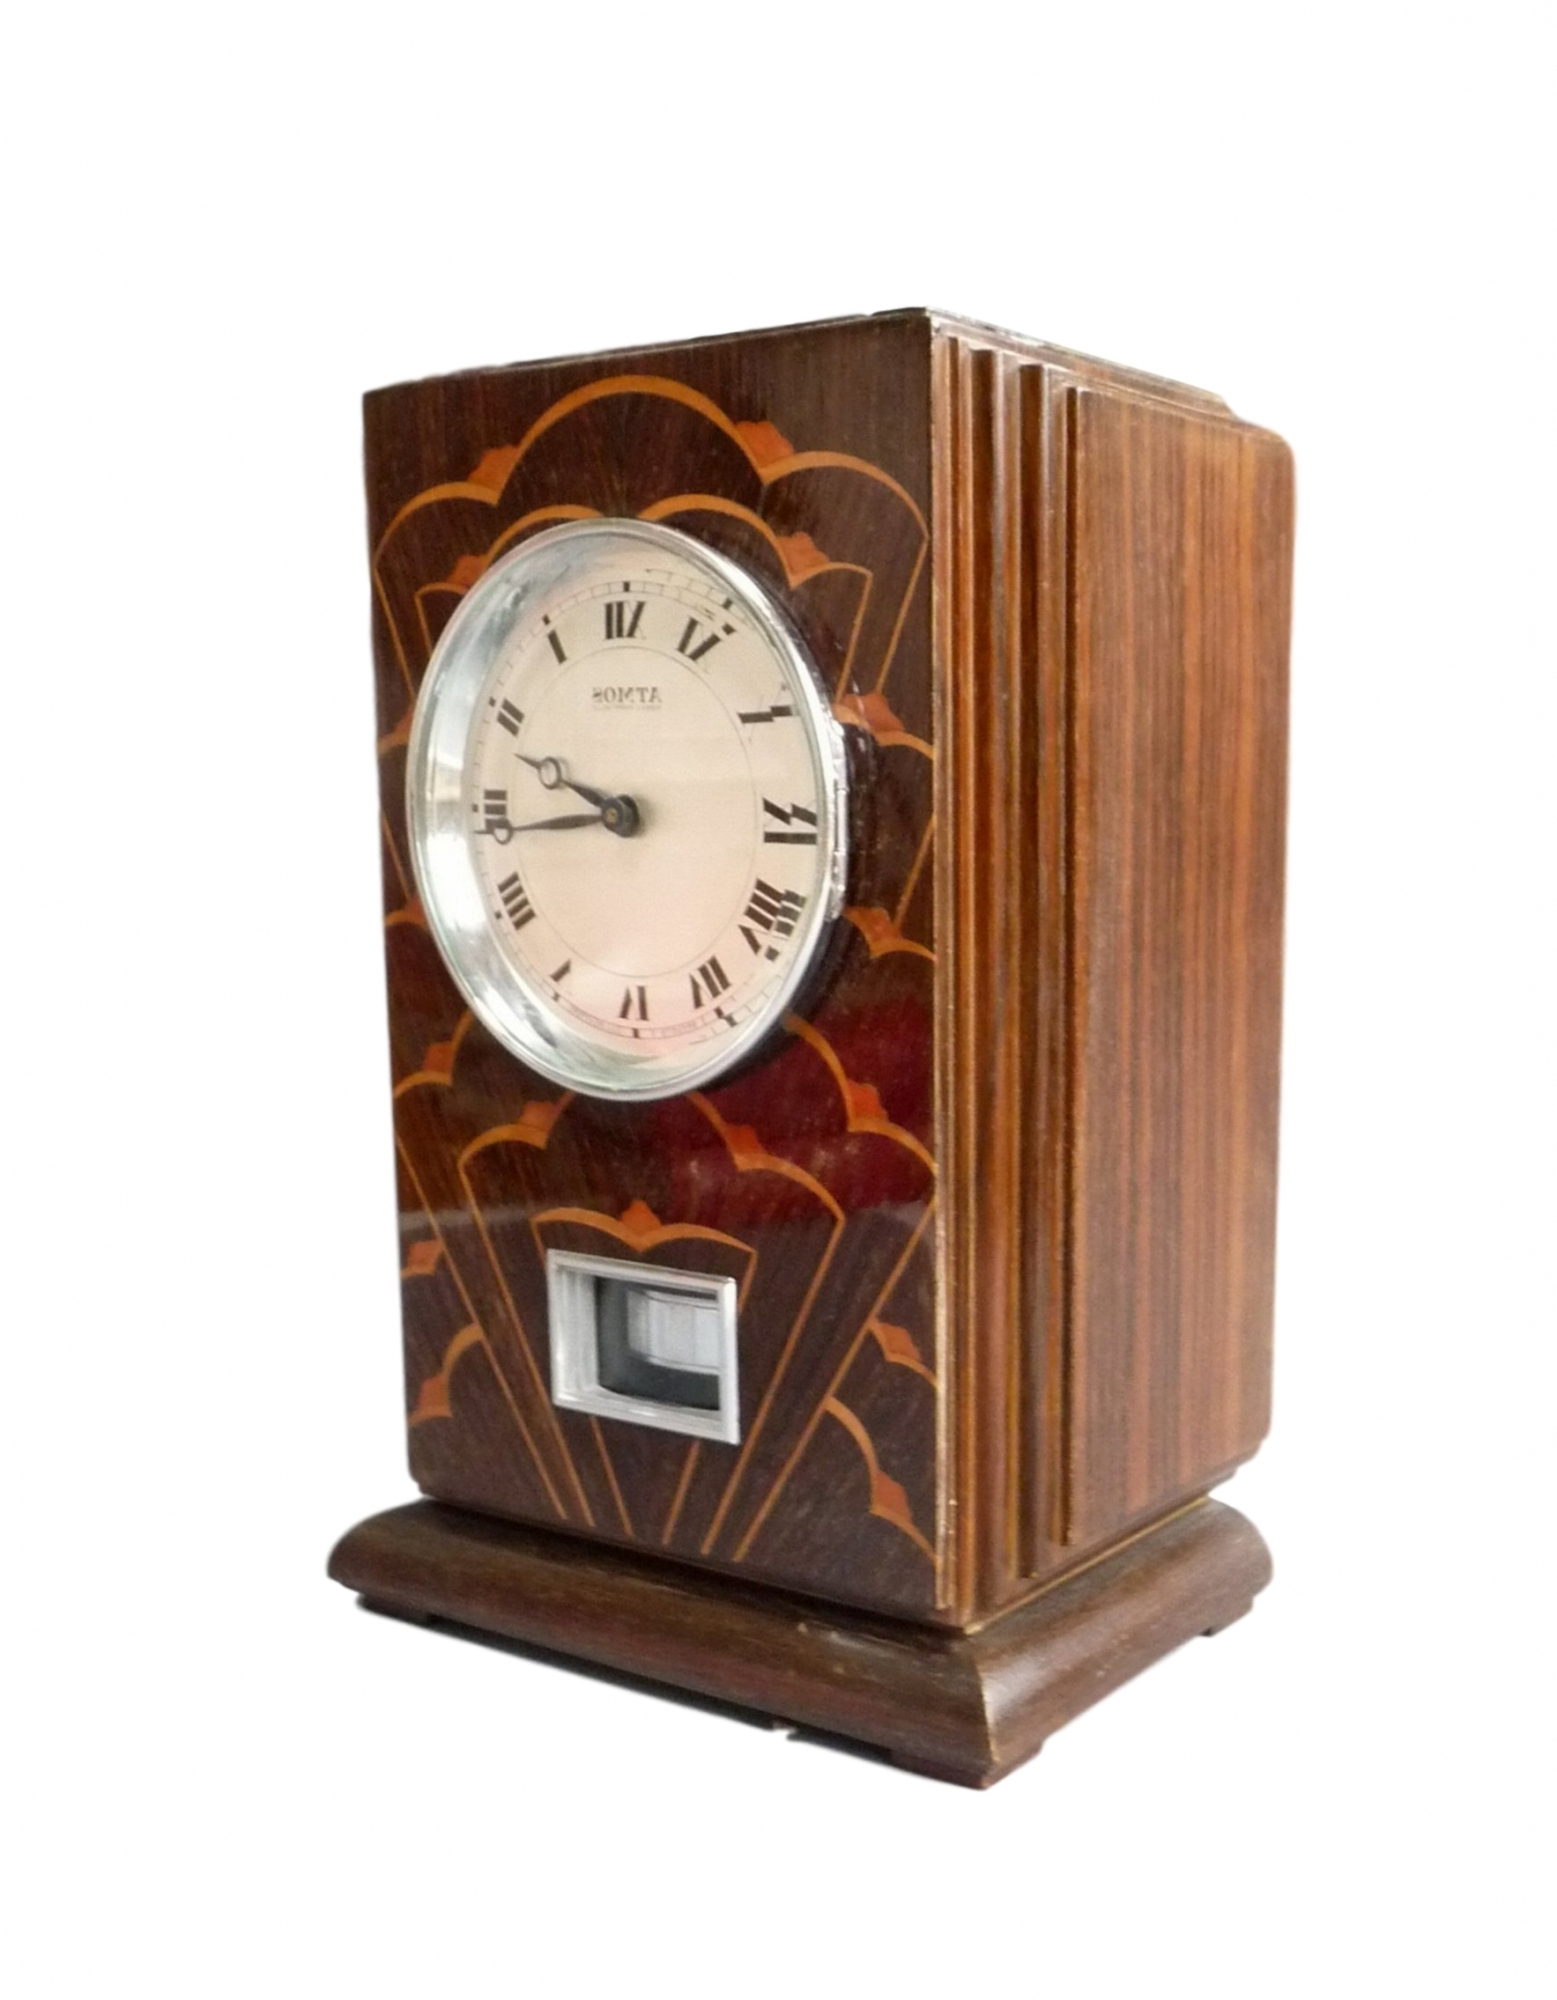 Art Deco Wall Clock With Regard To Famous M169 Coromandel Wooden Reutter Atmos Clock, Art Deco Period And (View 14 of 15)